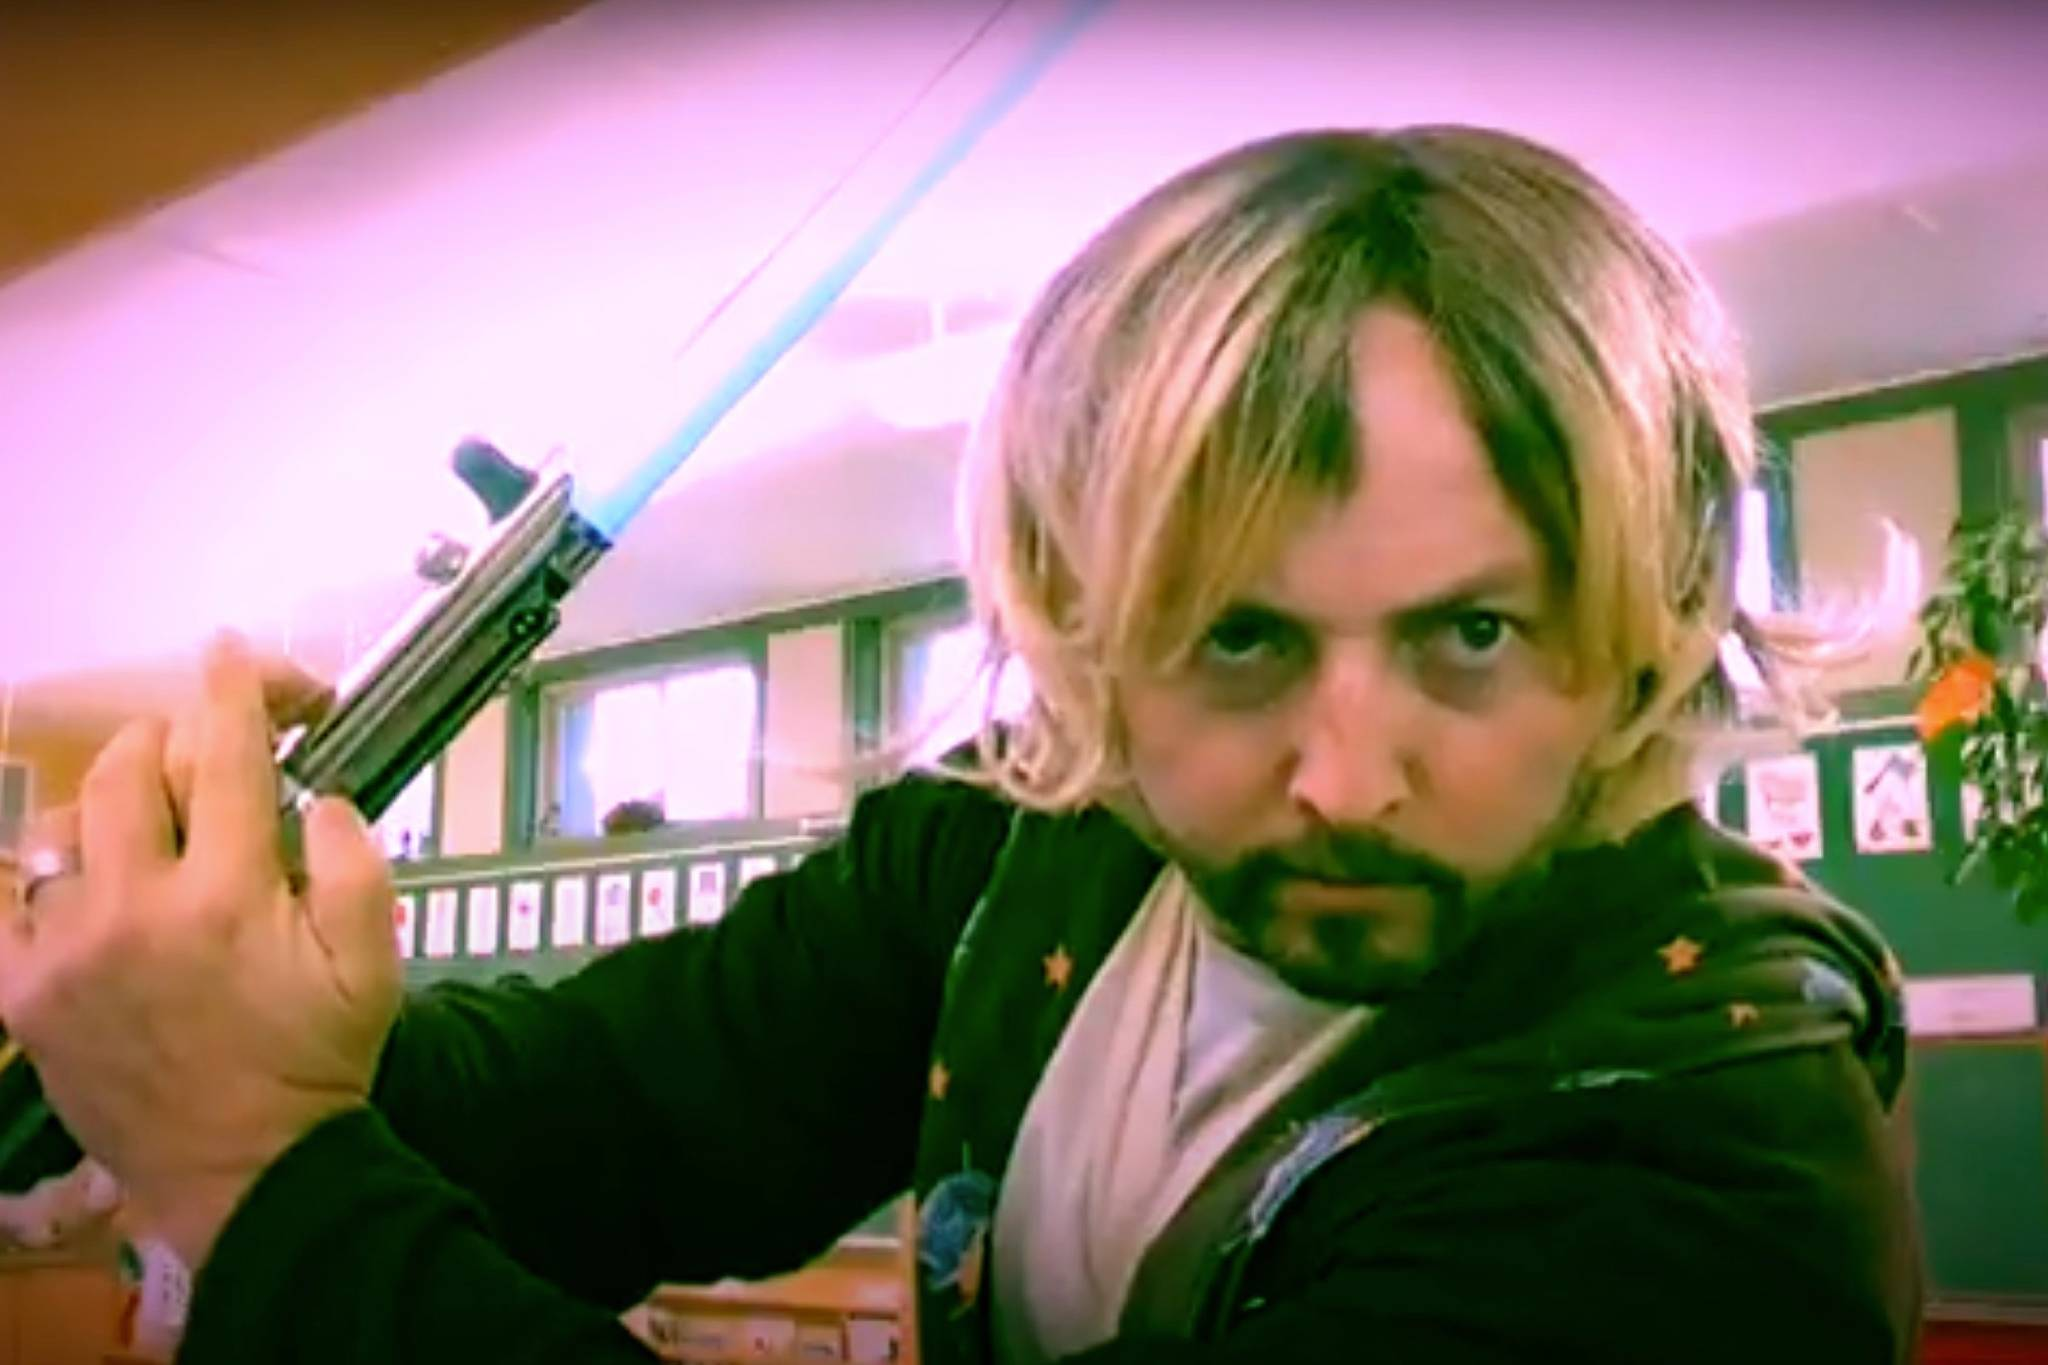 Luke Skywalker (played convincingly by Harrison Hot Springs Elementary kindergarten teacher Dustin Neufeld) strikes a determined pose during his address to Neufeld's students this week. (Photo/HHSES KinderChannel, YouTube)